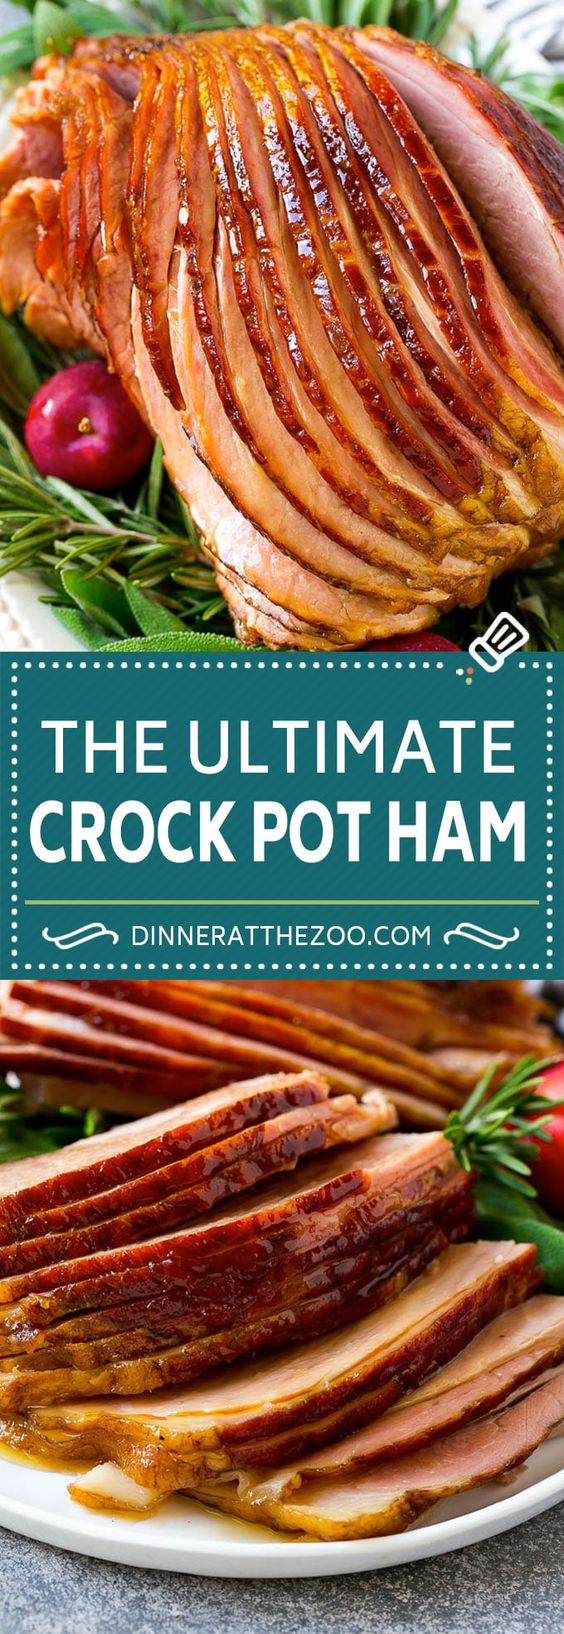 Crock Pot Ham Recipe | Slow Cooker Ham | Glazed Ham | Thanksgiving Ham | Christmas Ham | Easter Ham #ham #slowcooker #crockpot #dinner #christmas #thanksgiving #easter #glutenfree #dinneratthezoo